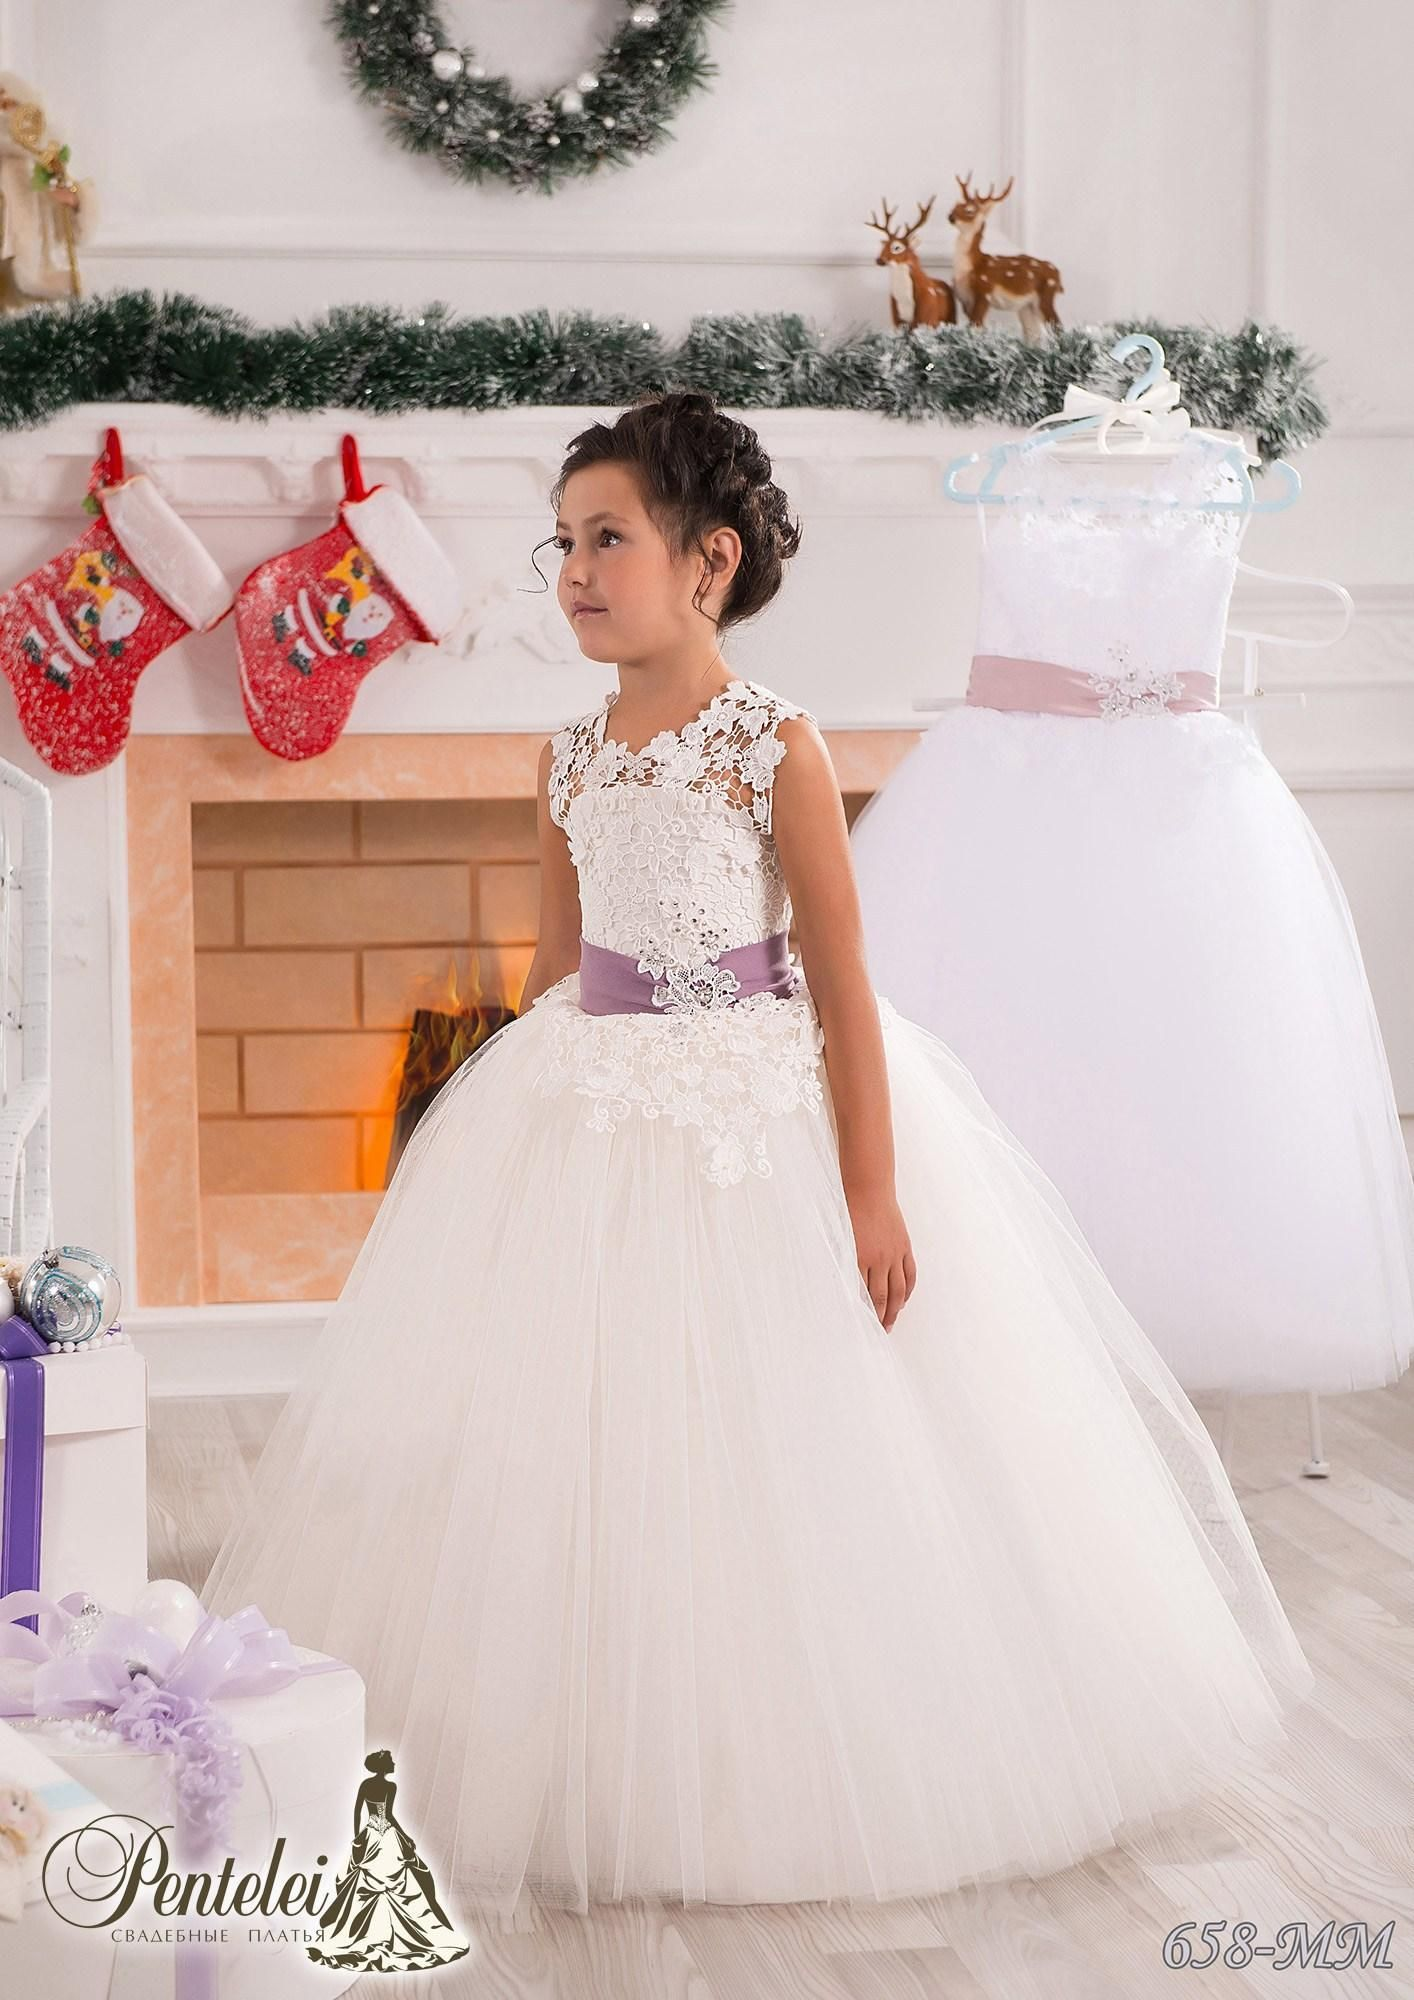 Flower Girl Dress Weddings Ball Gown Pageant Gown First Communion Party Princess